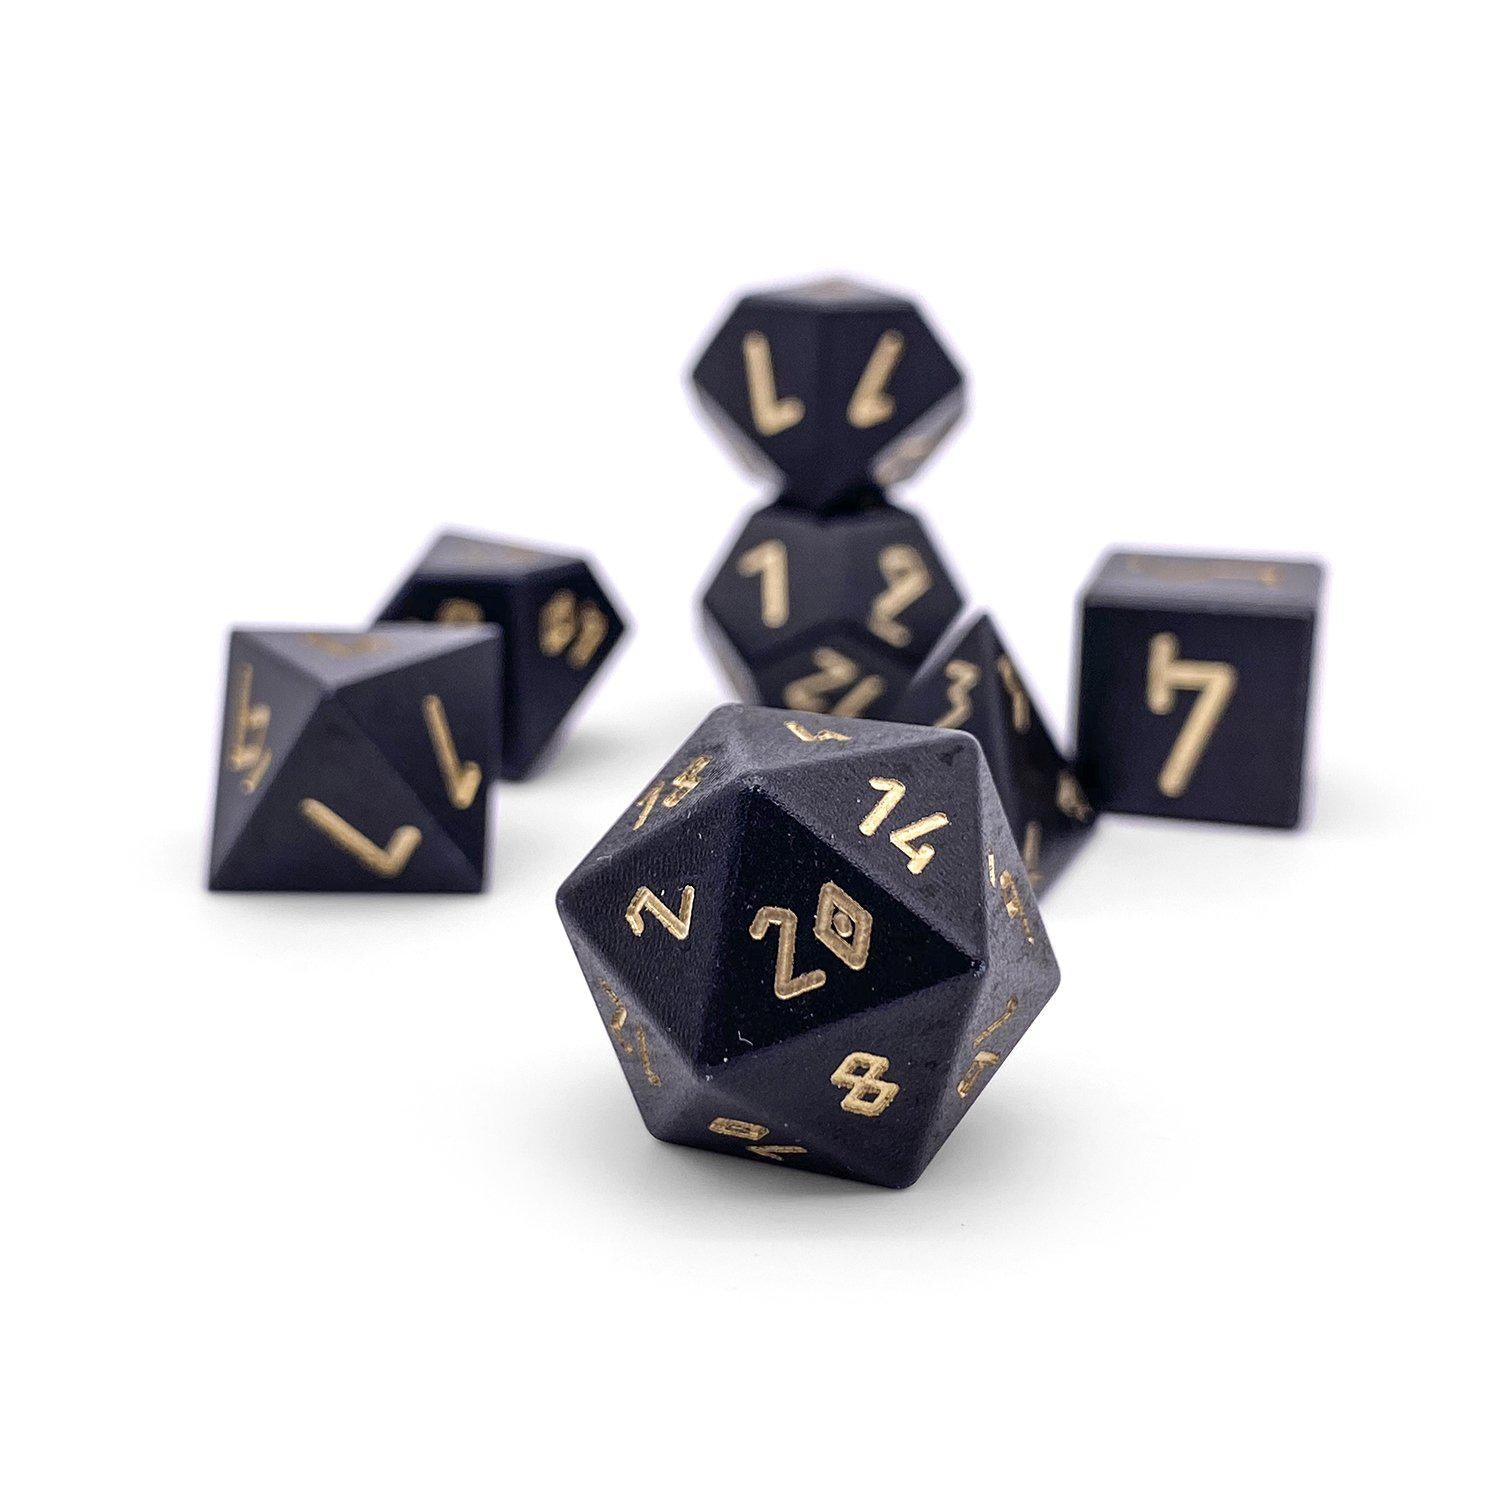 Orb Series - Orb of Disintegration - Set of 7 RPG Dice by Norse Foundry Precision Polyhedral Dice Set